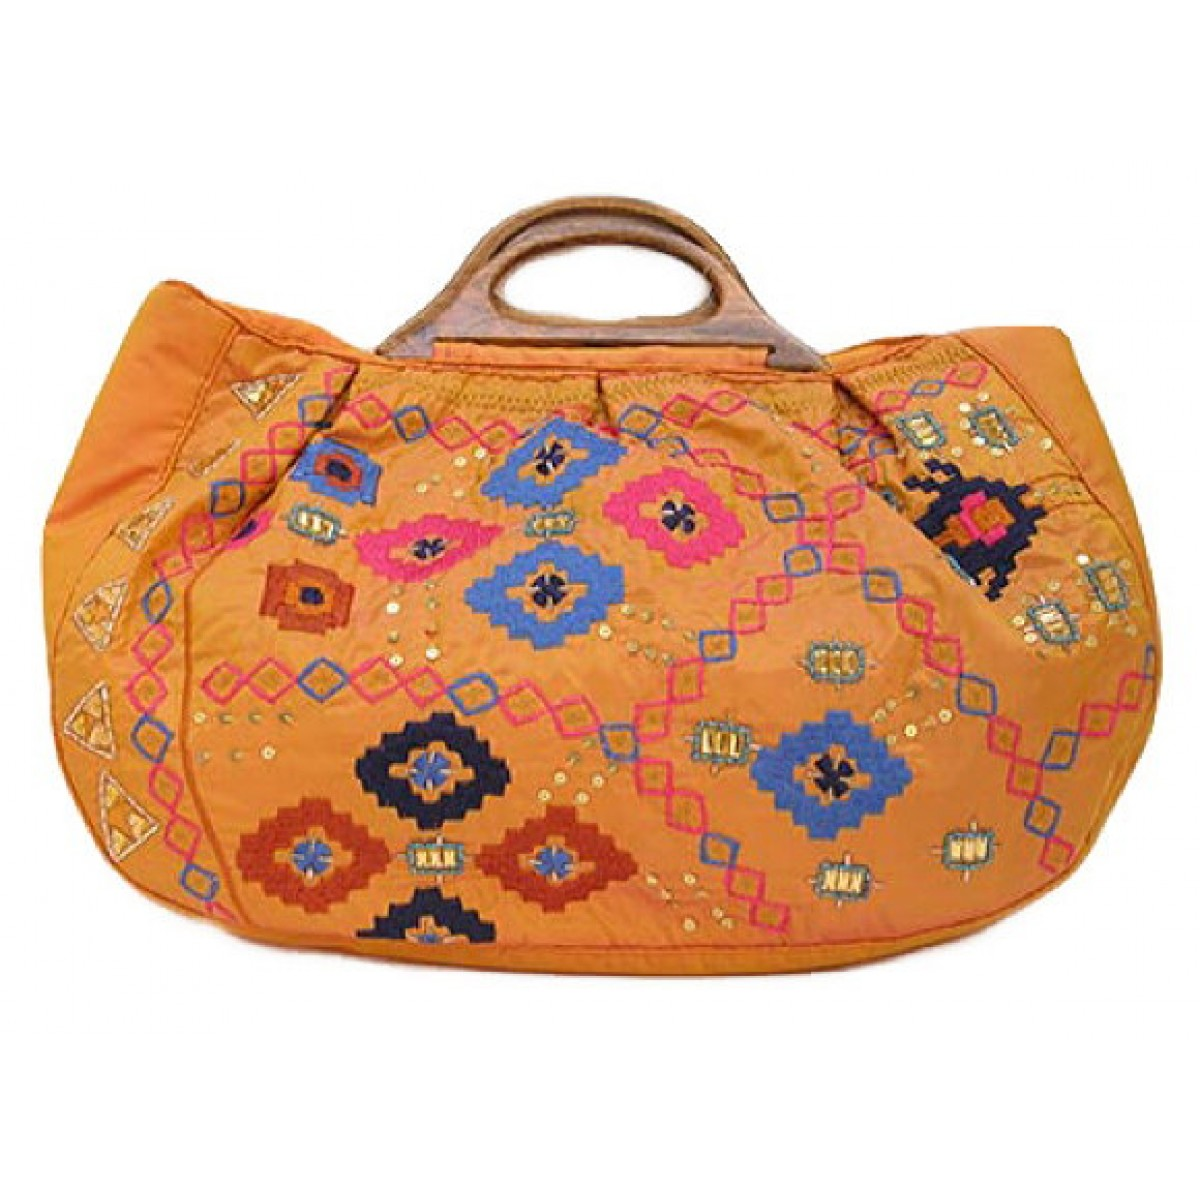 Embroidered Tote Bag with Wooden Handles